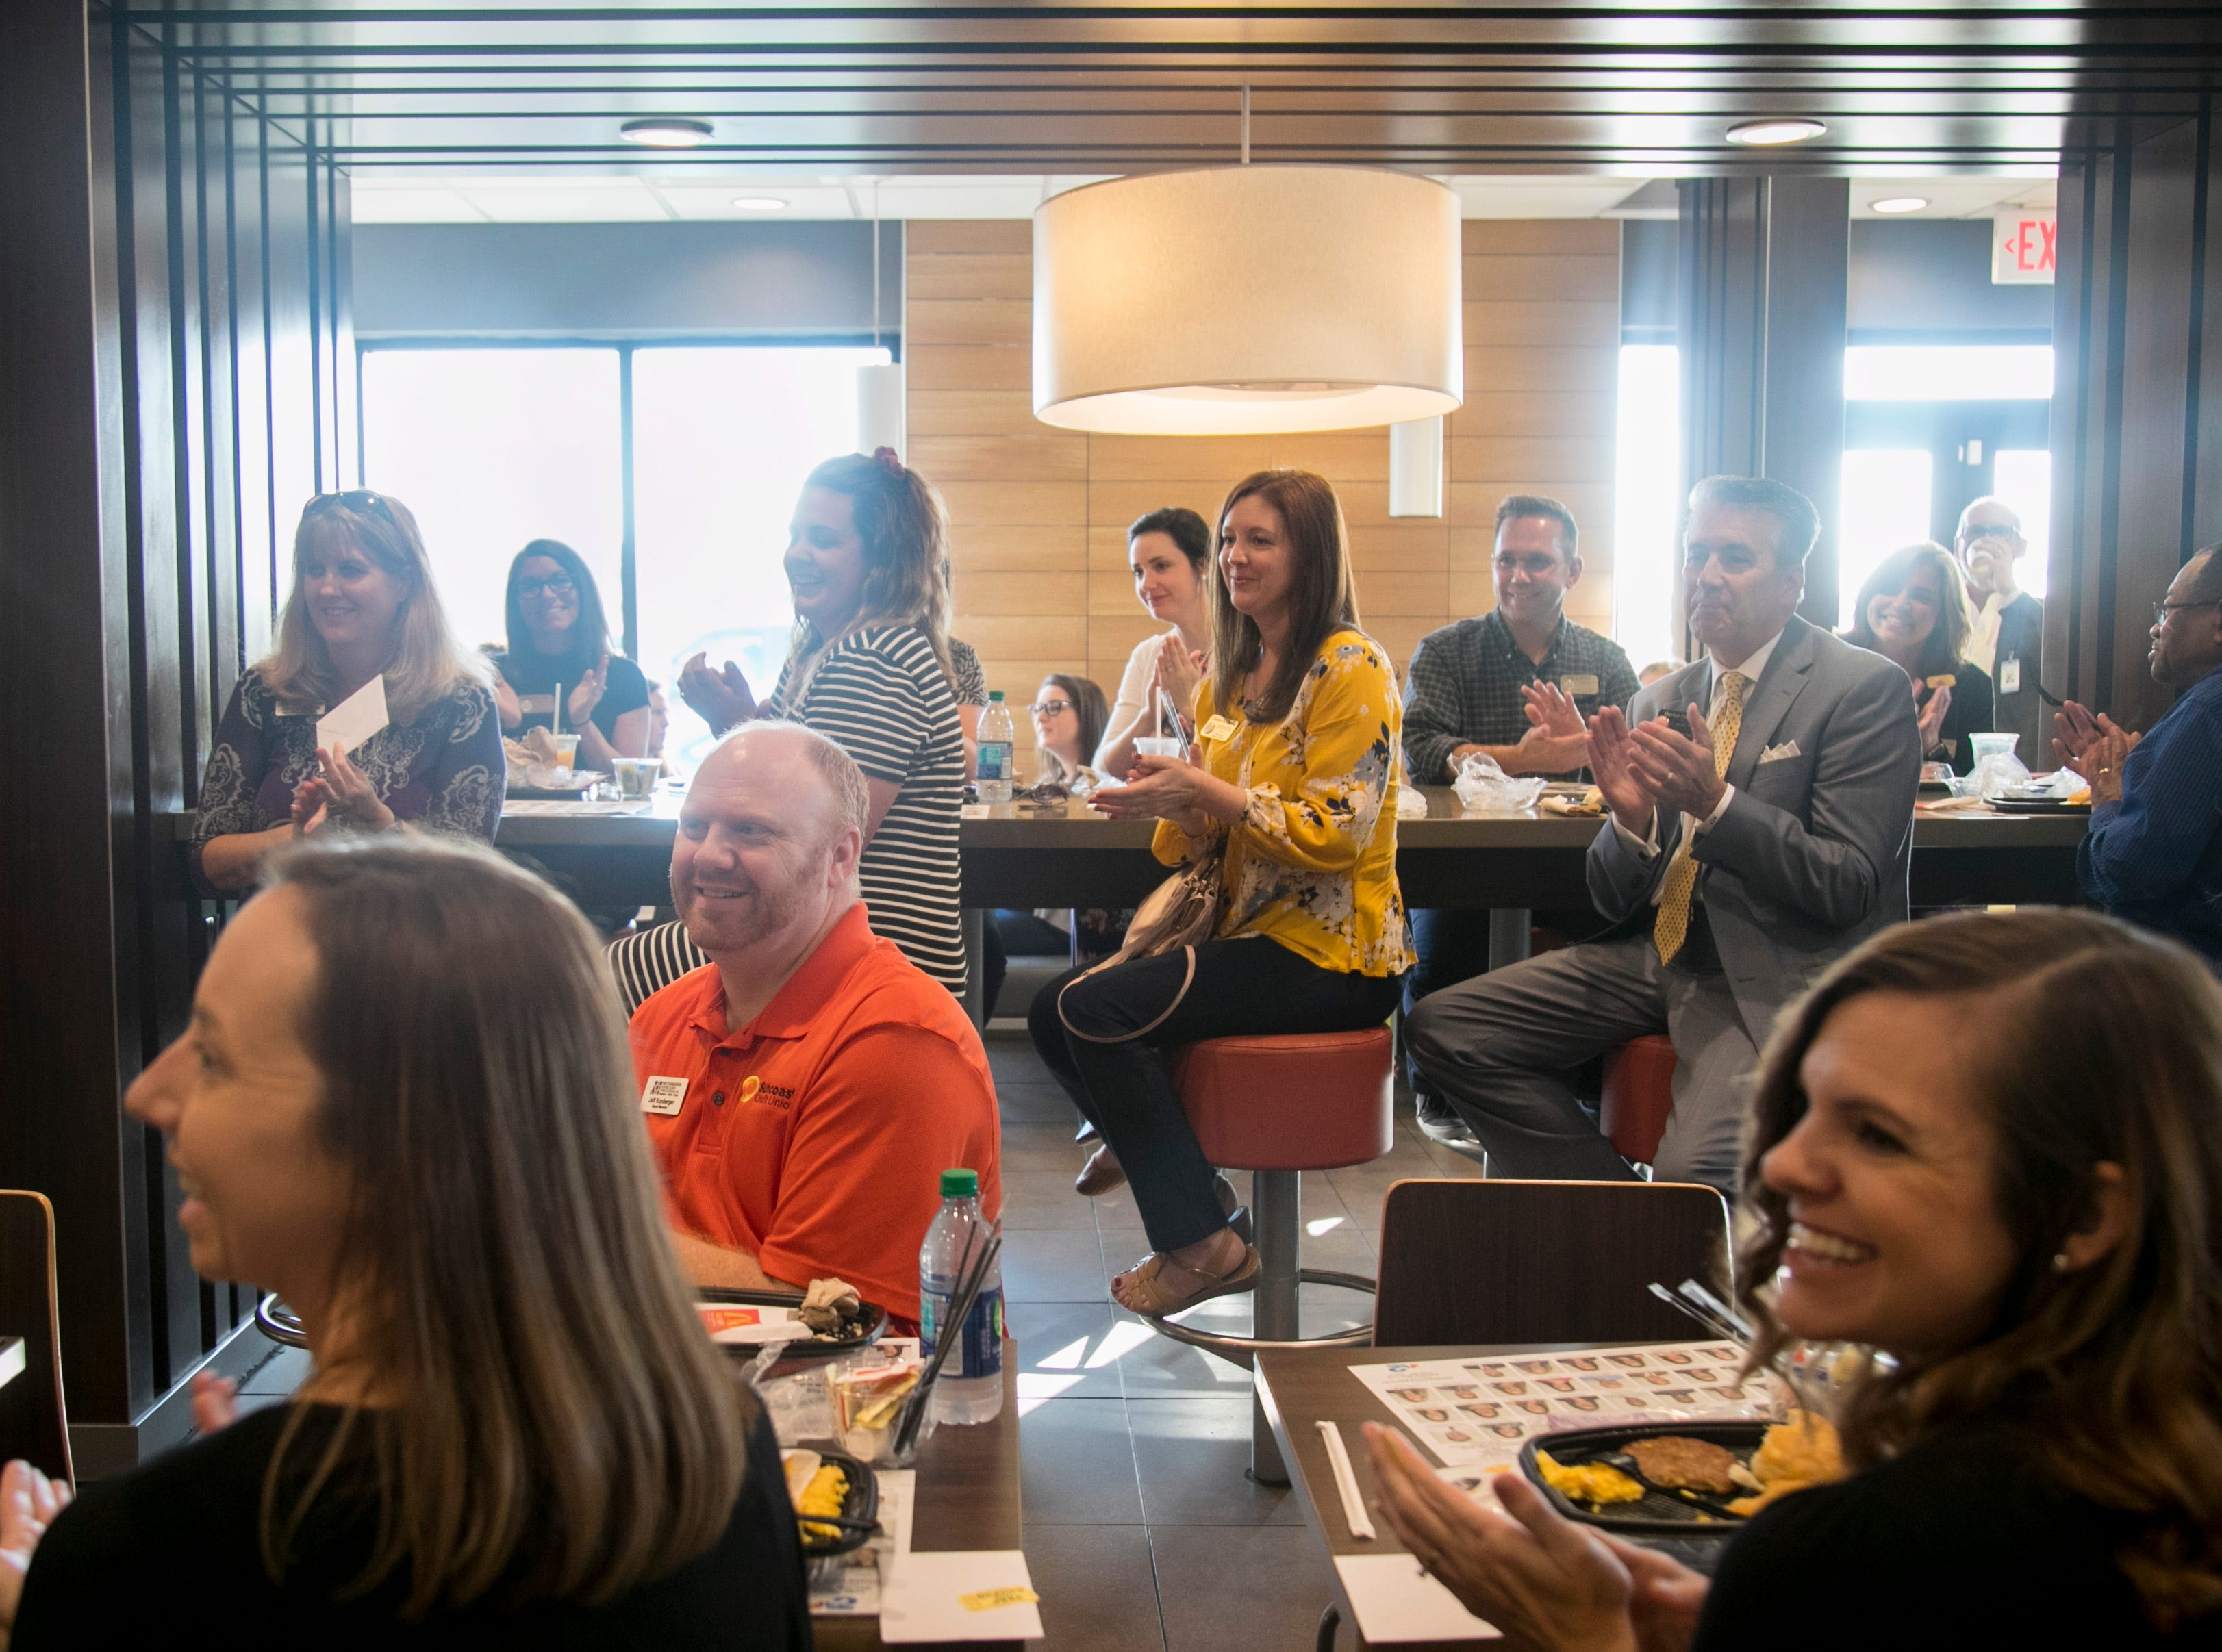 Golden Apple Teacher finalists, Lee County School Board members, Foundation for Lee County Public Schools board members and sponsors attended the annual Golden Apple Teacher Recognition breakfast at McDonald's on Colonial Boulevard in Fort Myers on Friday, Feb. 15, 2019.